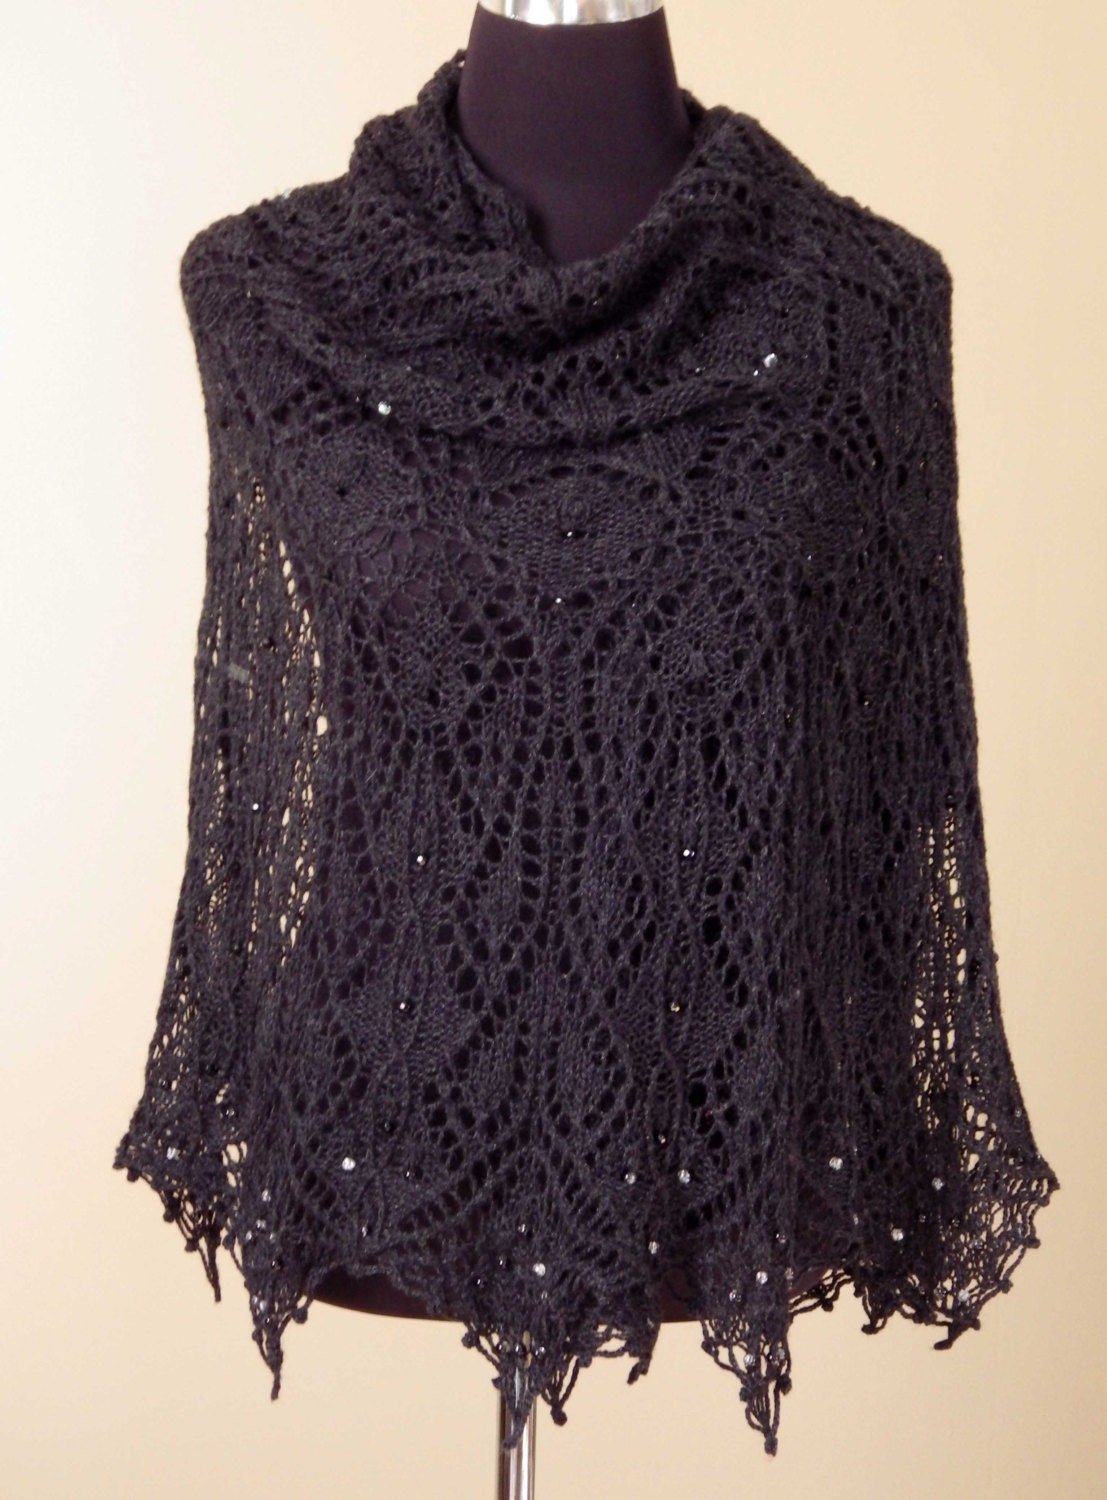 Black Knit Lace Shawl Silk Merino Yarn Glass Beads Hand